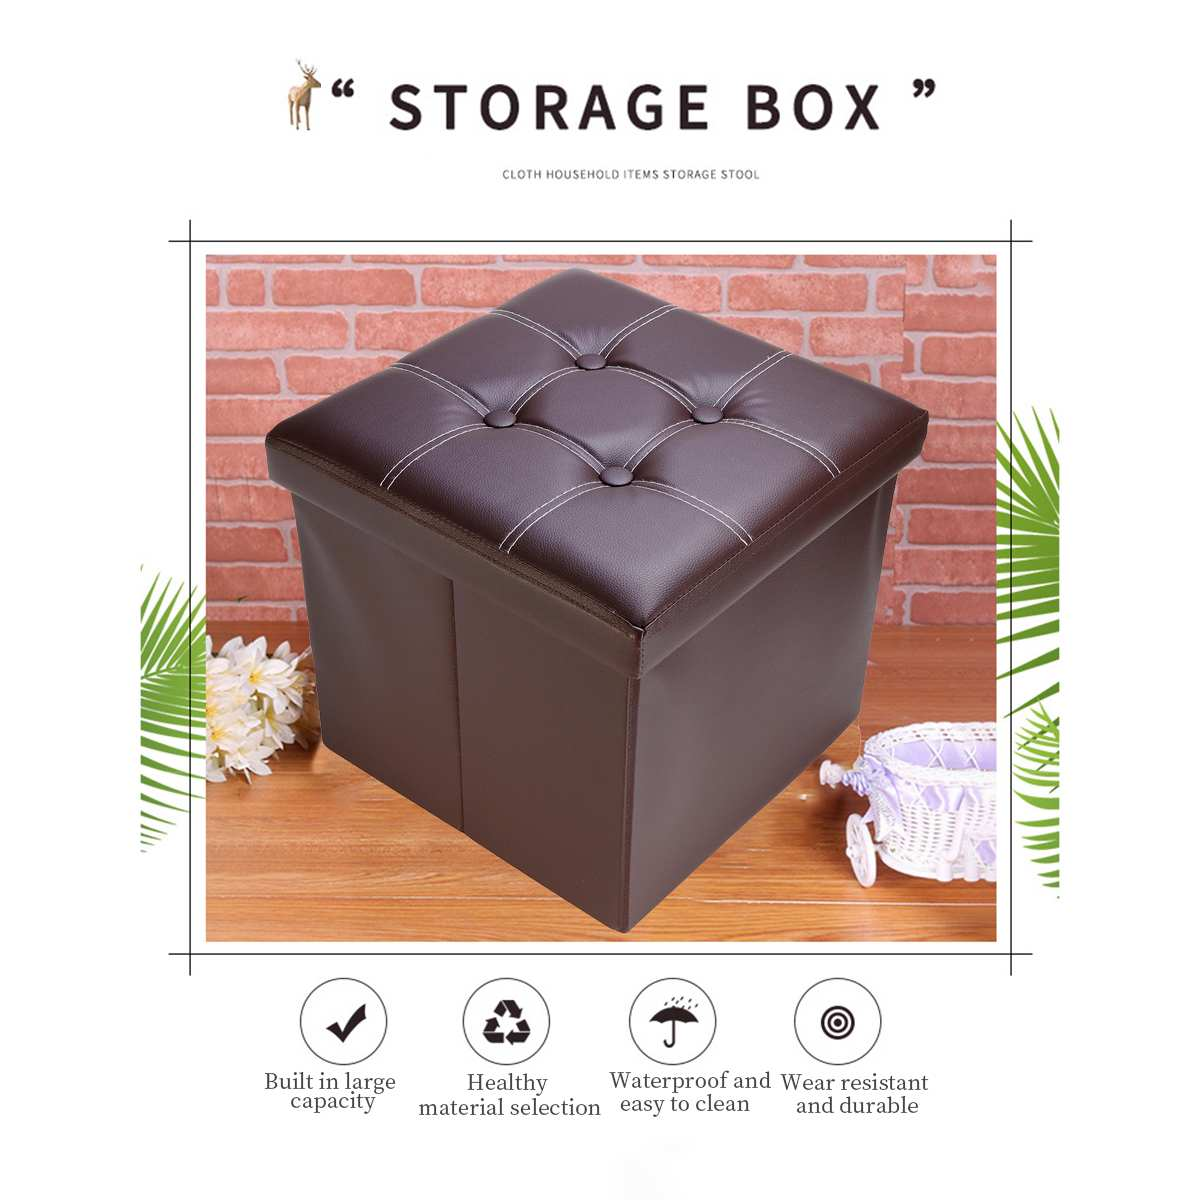 eSituro Ottoman Storage Square Chest Padded Footstool Linen Foldable Pouffe Chair Beige Bed End Bench Shoe Bench Children Toy Box Stool Milking Stool